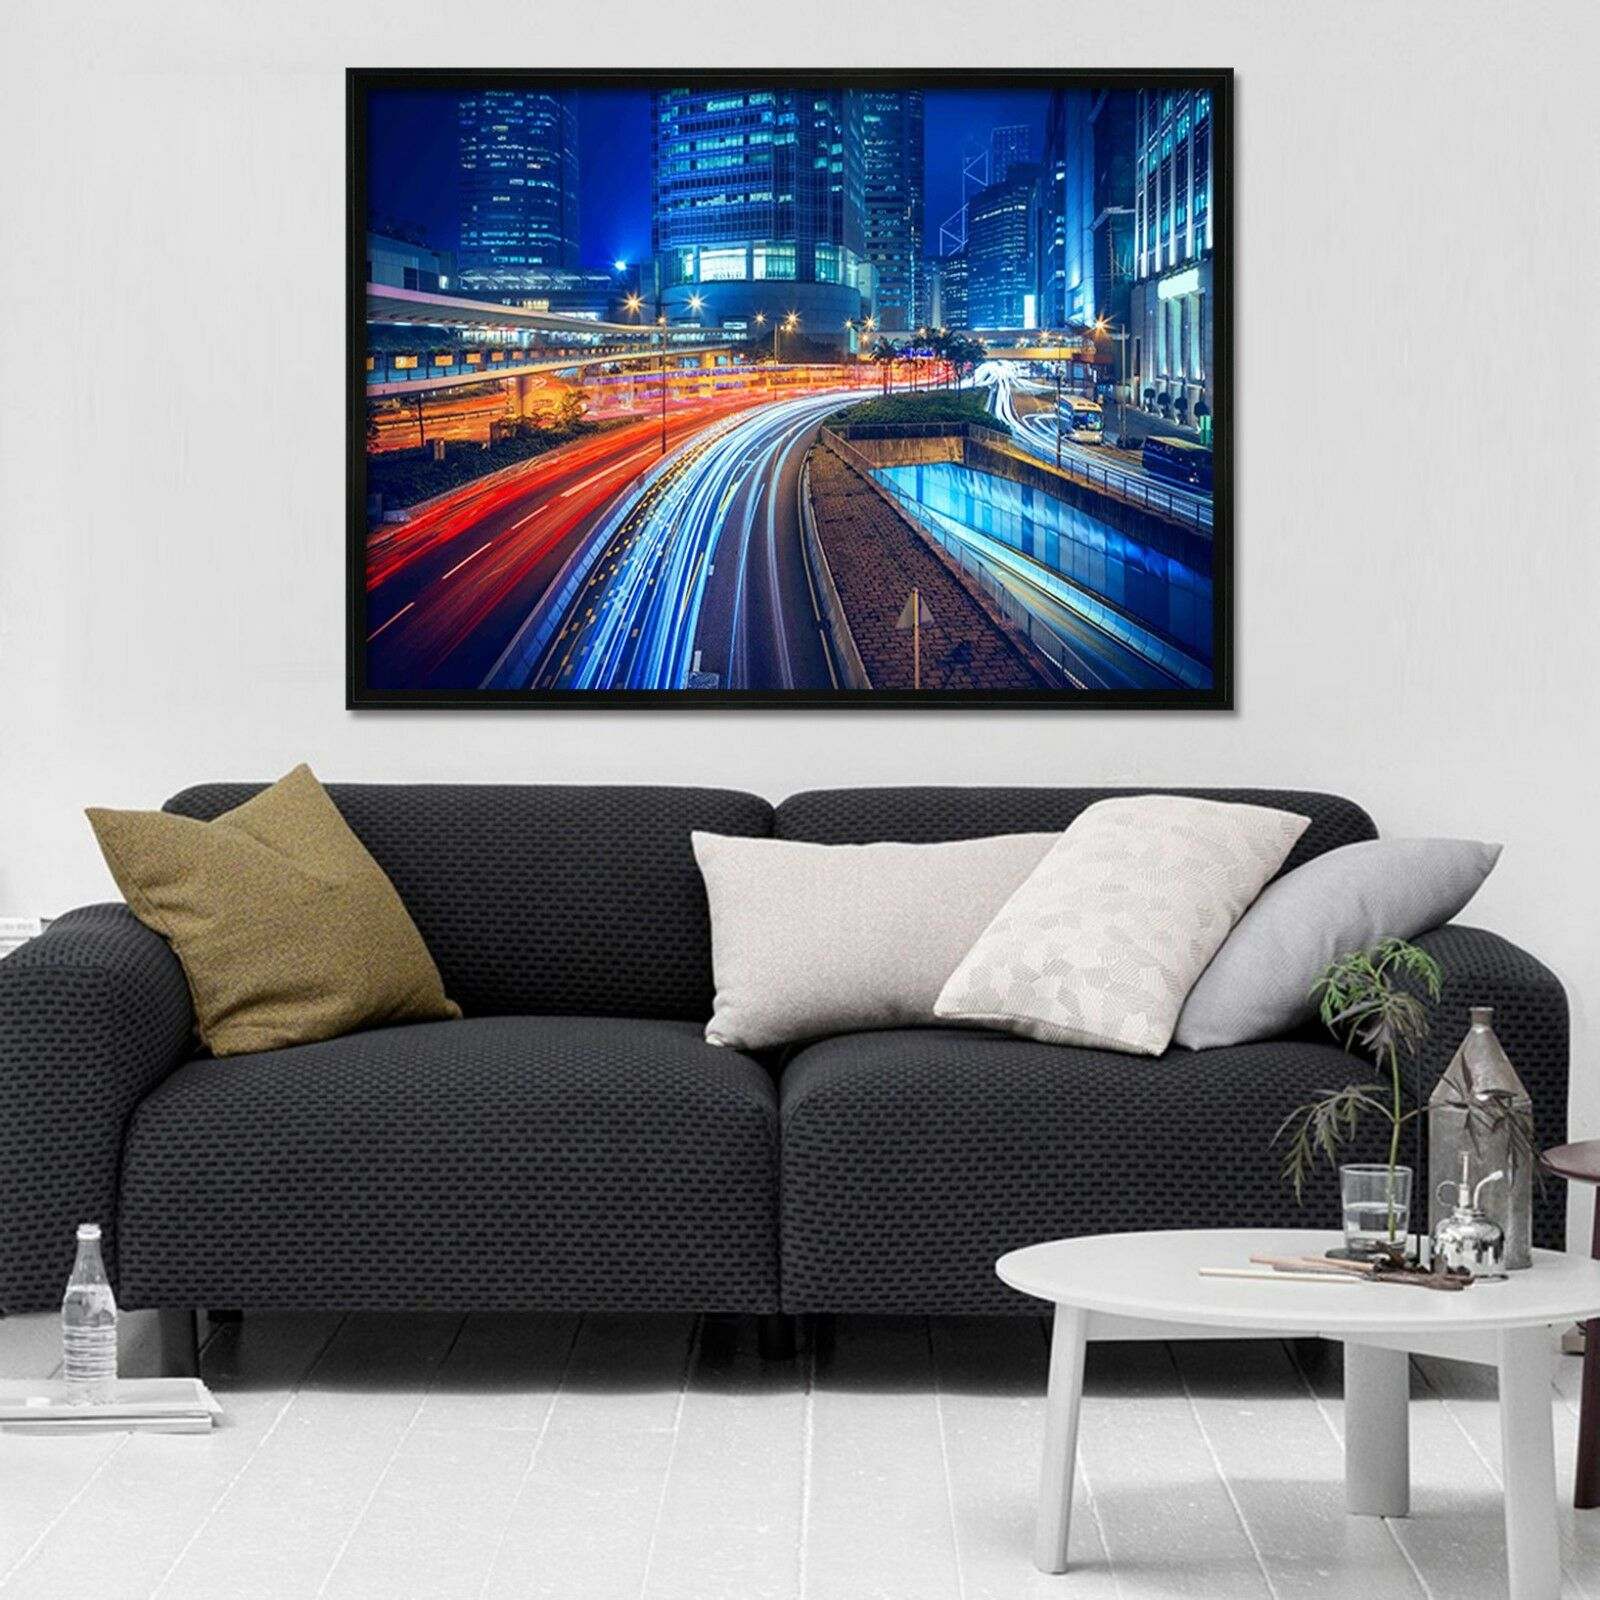 3D Car Street 6 Framed Poster Home Decor Print Painting Art AJ WALLPAPER AU